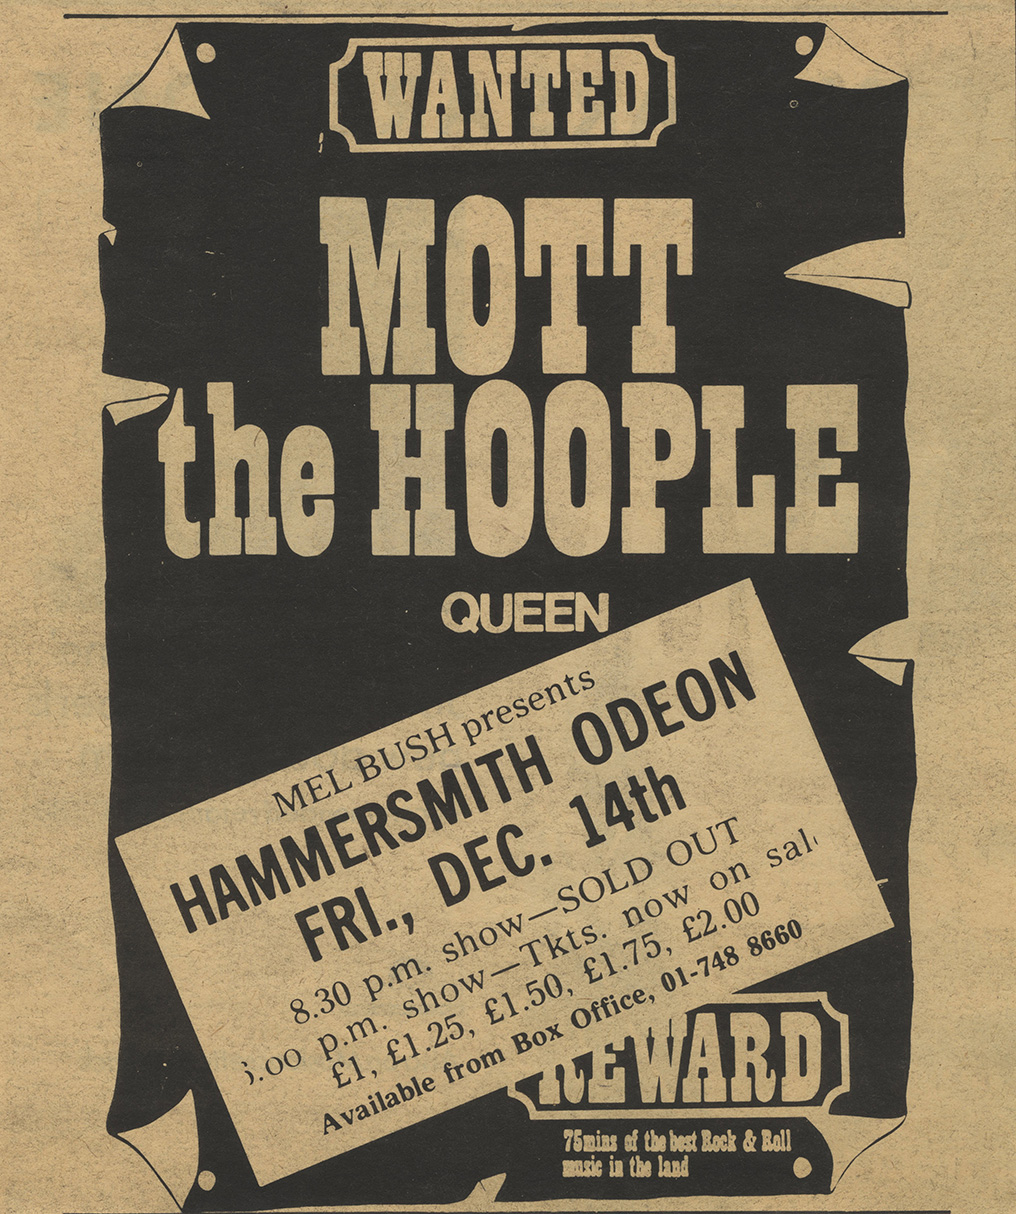 Mott/Queen in London on 14.12.1973